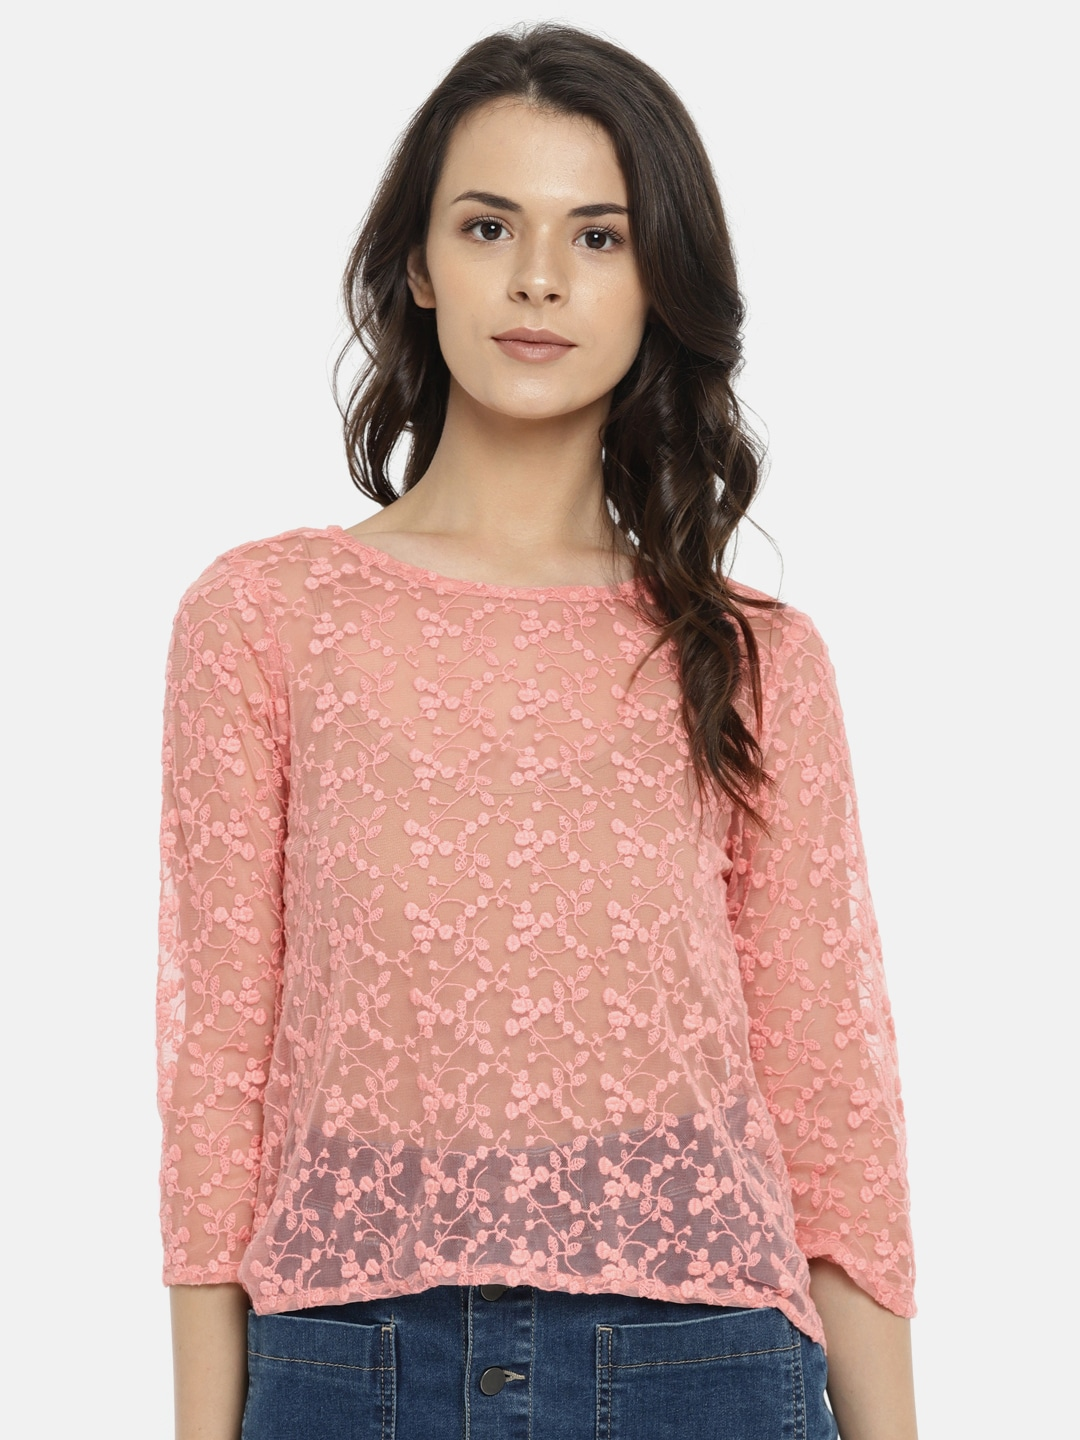 fc46586ab77490 Elle Clothing - Buy Elle Clothing Online in India